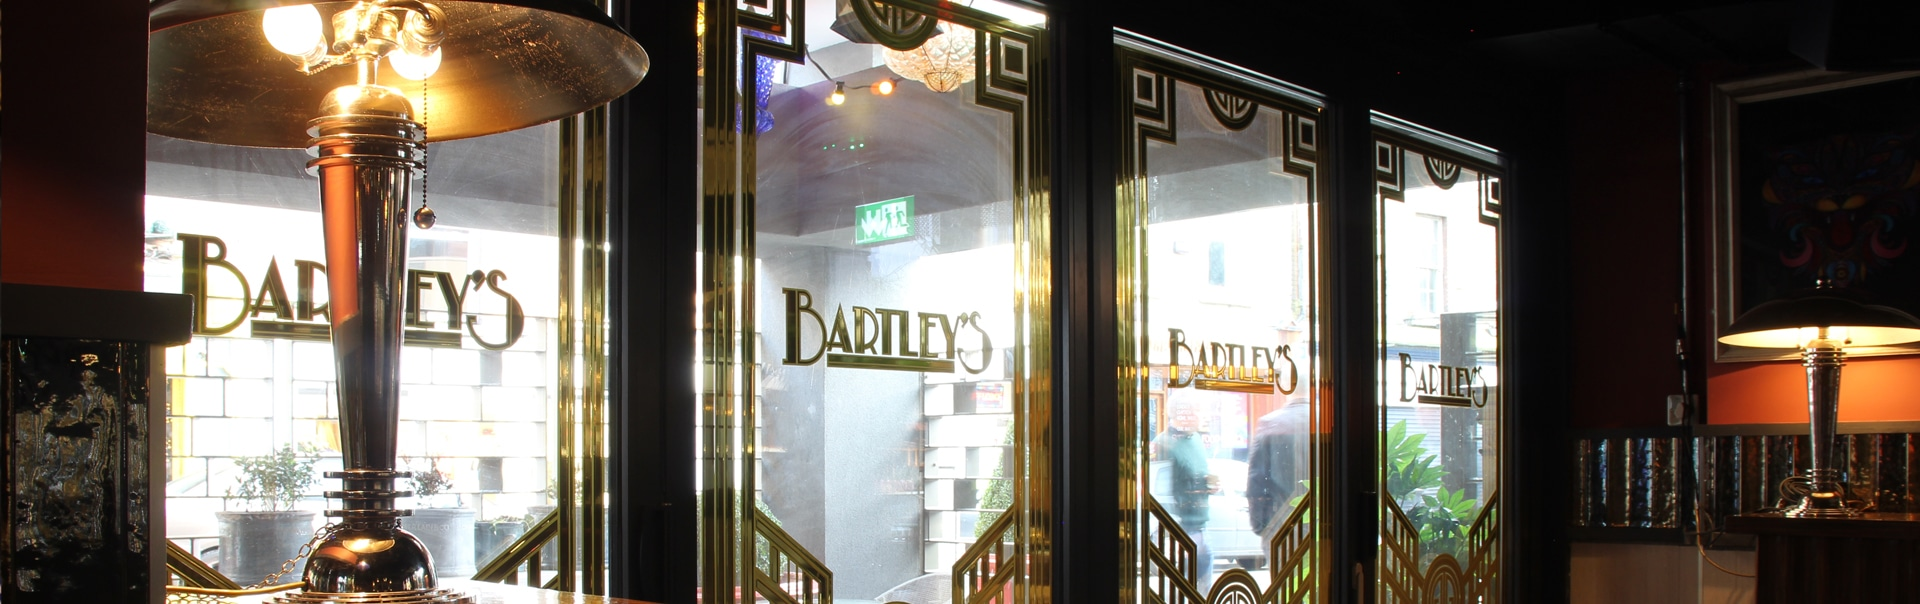 Bartleys | Gold Manifestations